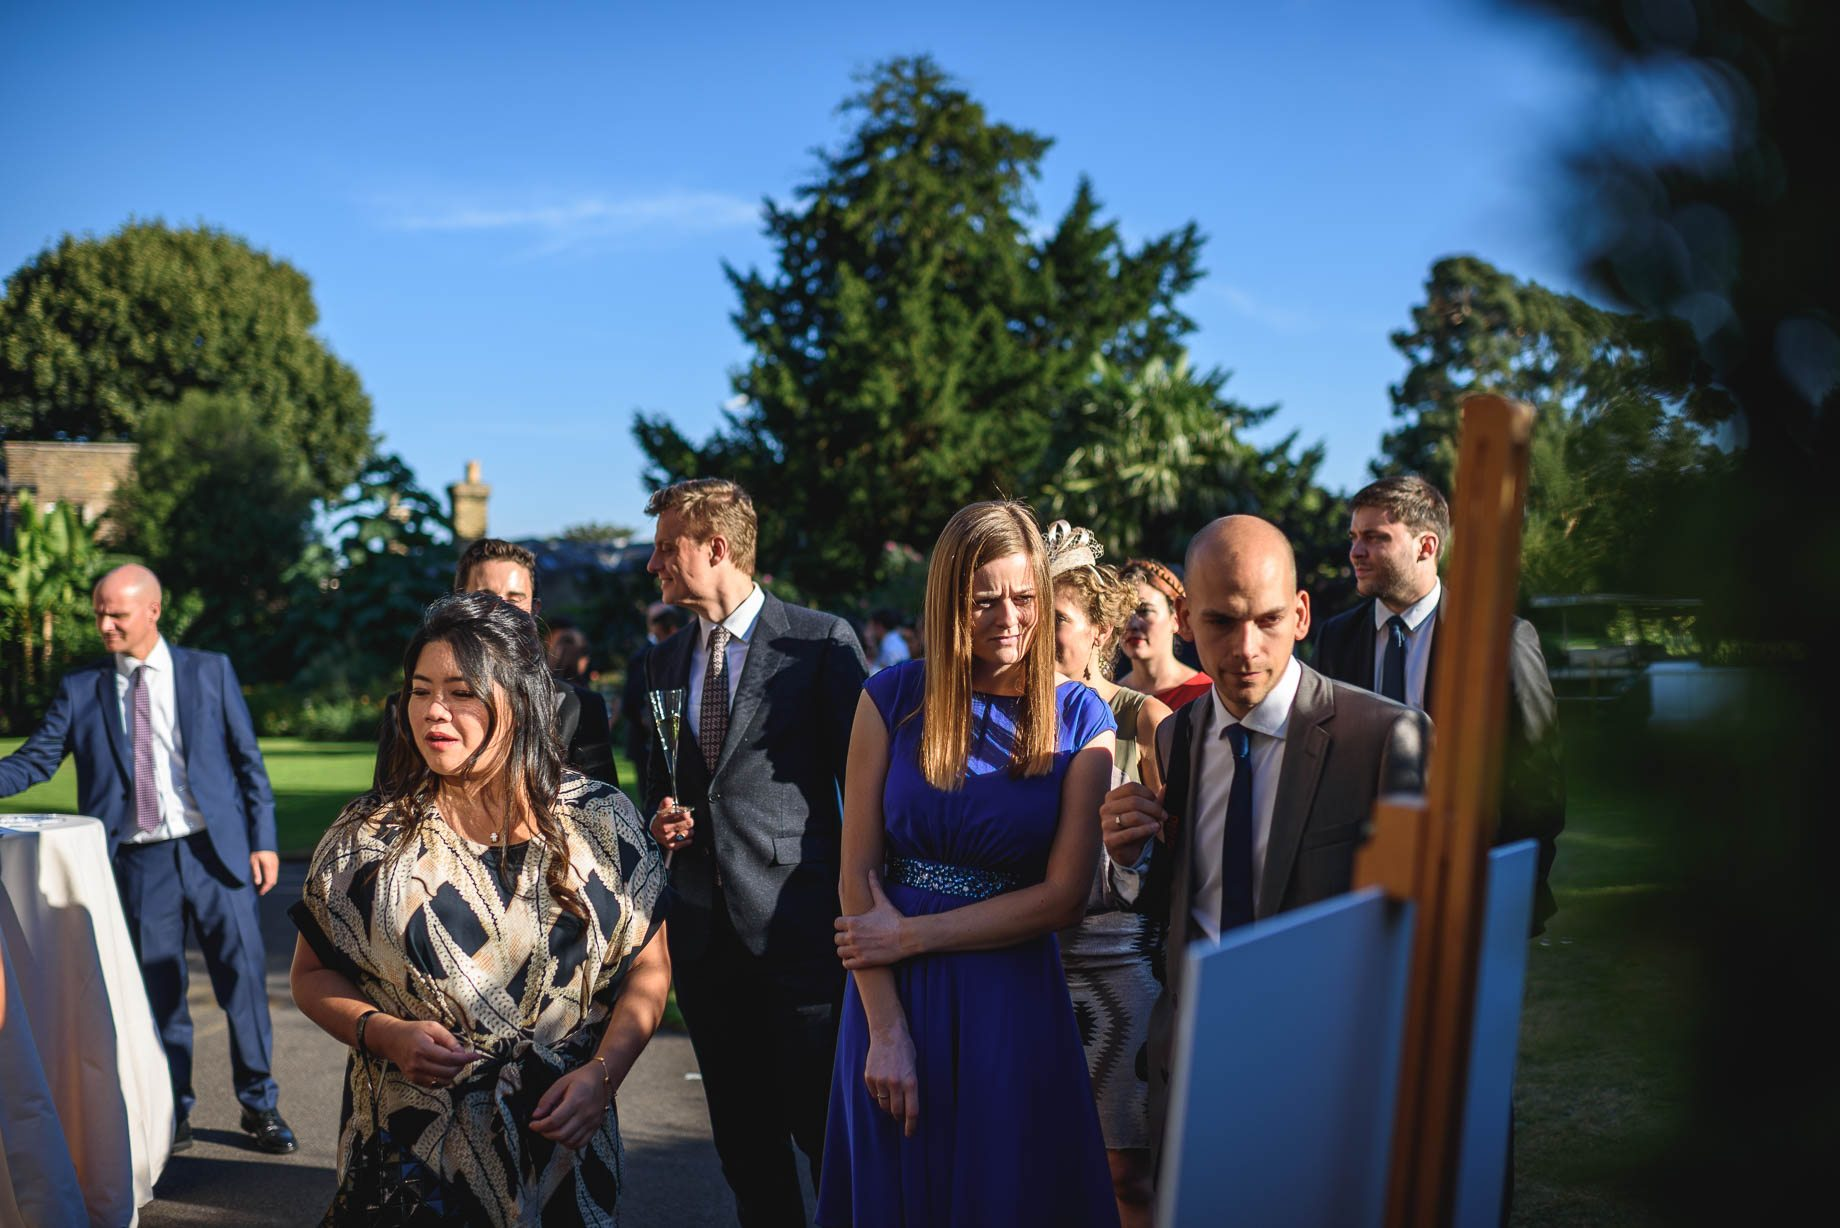 Kew Gardens wedding photography - Guy Collier Photography - Gloria and Frederik (105 of 173)